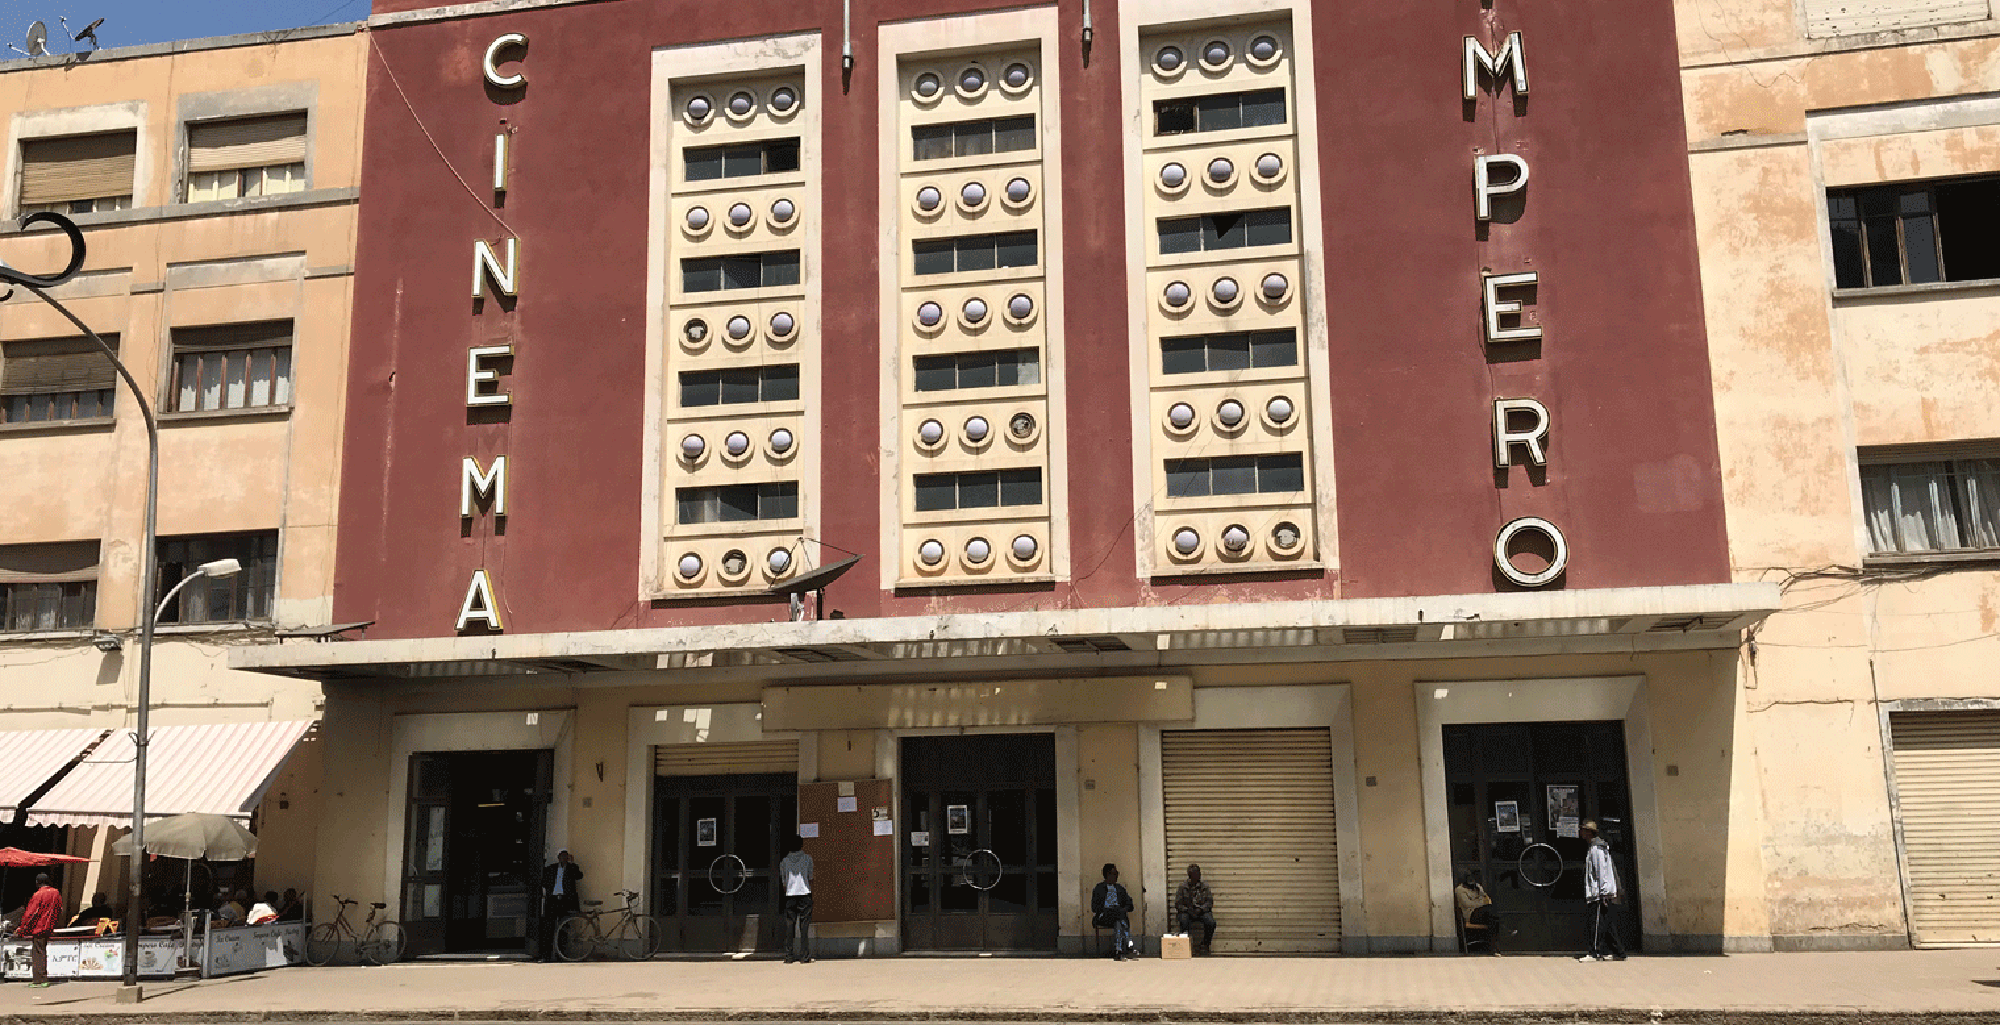 Eritrea-Asmara-City-Architecture-Cinema